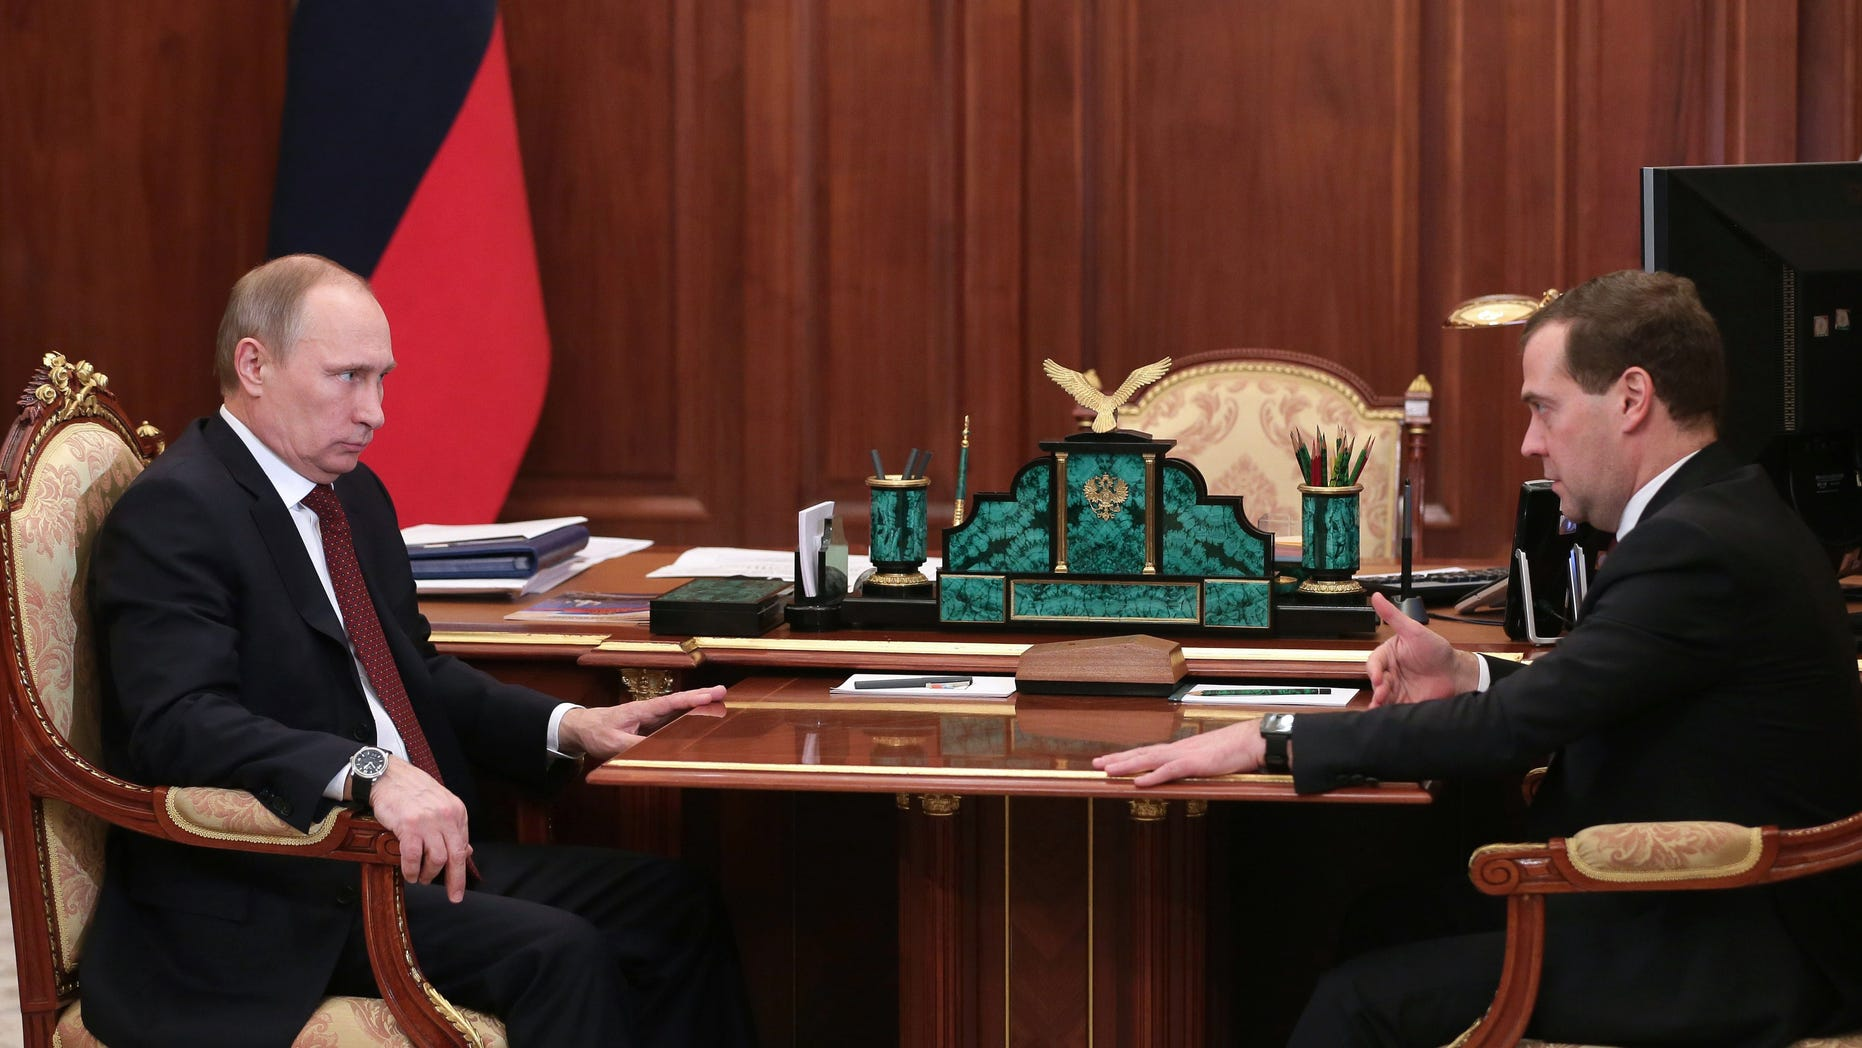 Russian President Vladimir Putin, left, speaks during a meeting with Premier Dmitry Medvedev in Moscow's Kremlin Monday, Dec. 30, 2013. Putin met with officials Monday to discuss the bombings in Volgograd. (AP Photo/RIA Novosti, Mikhail Metzel, Presidential Press Service)